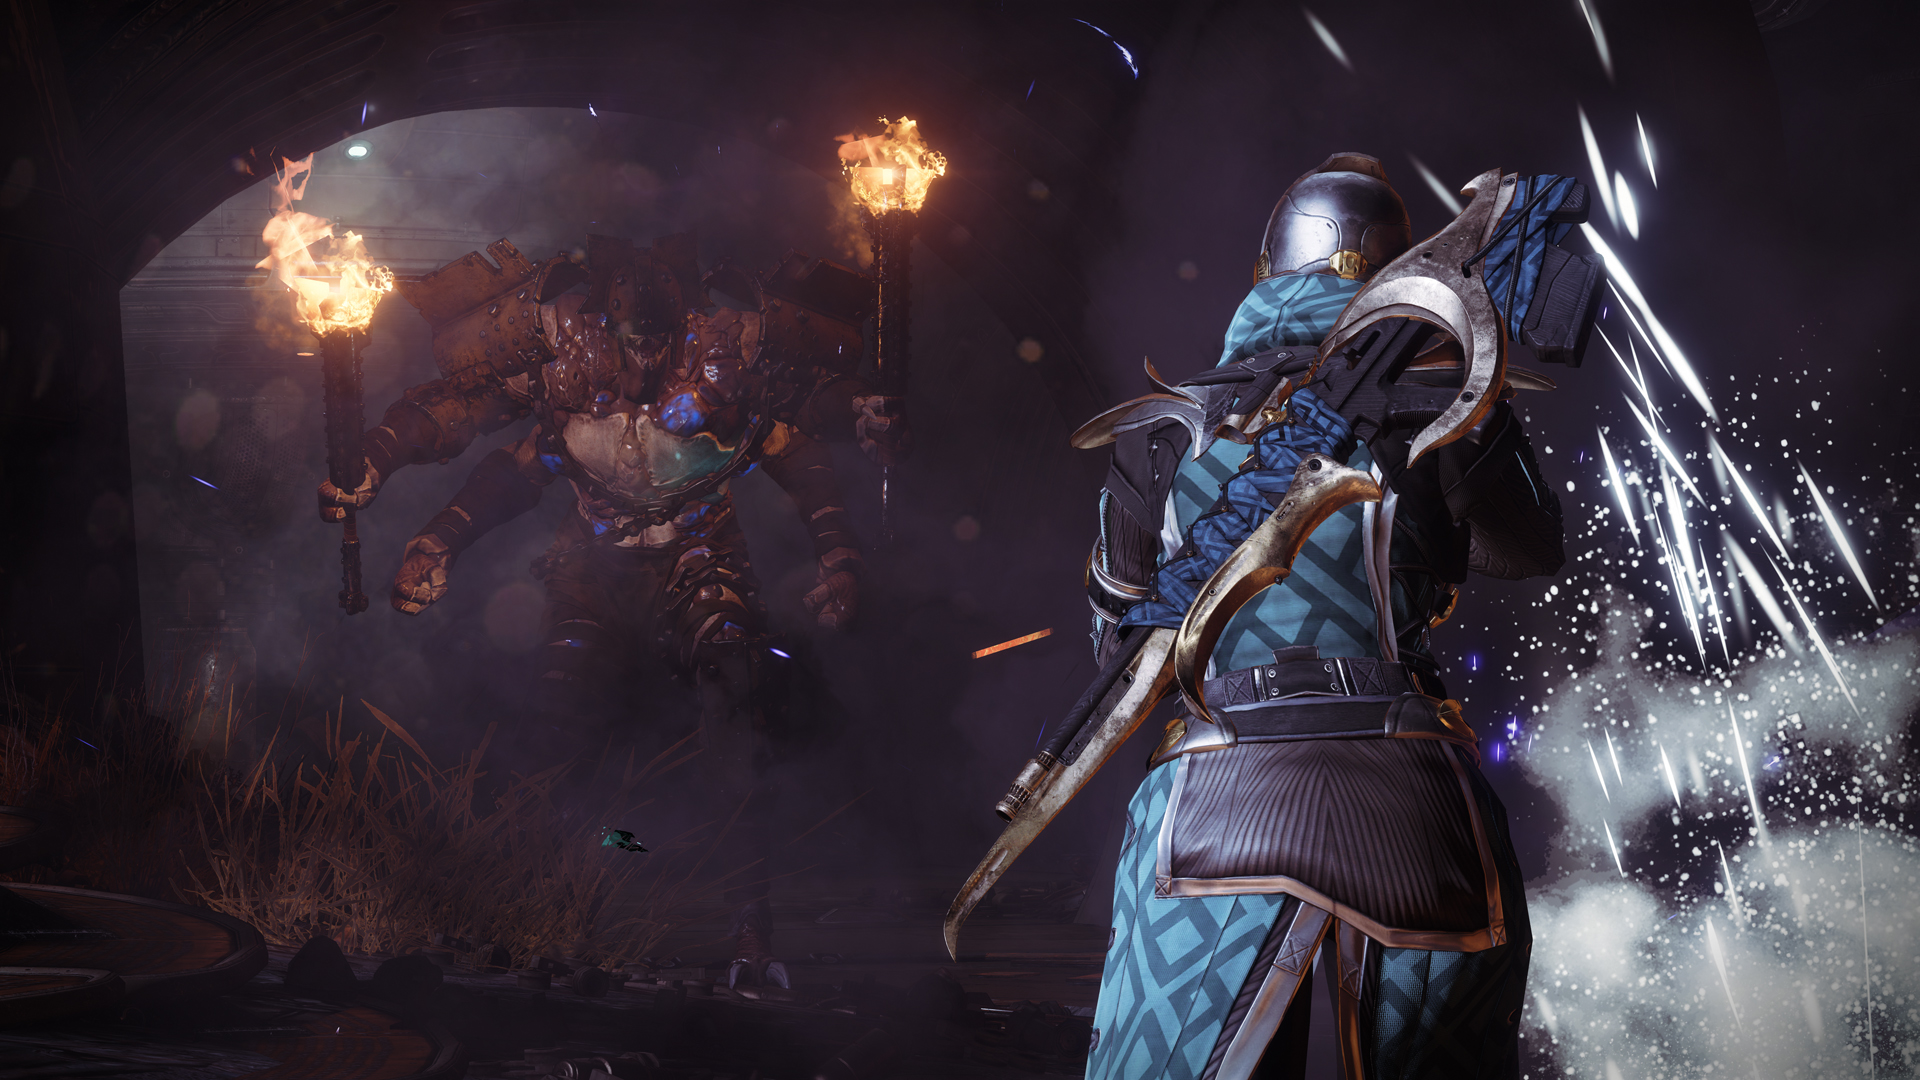 Destiny 2: How to Complete the Warlock's Solstice of Heroes